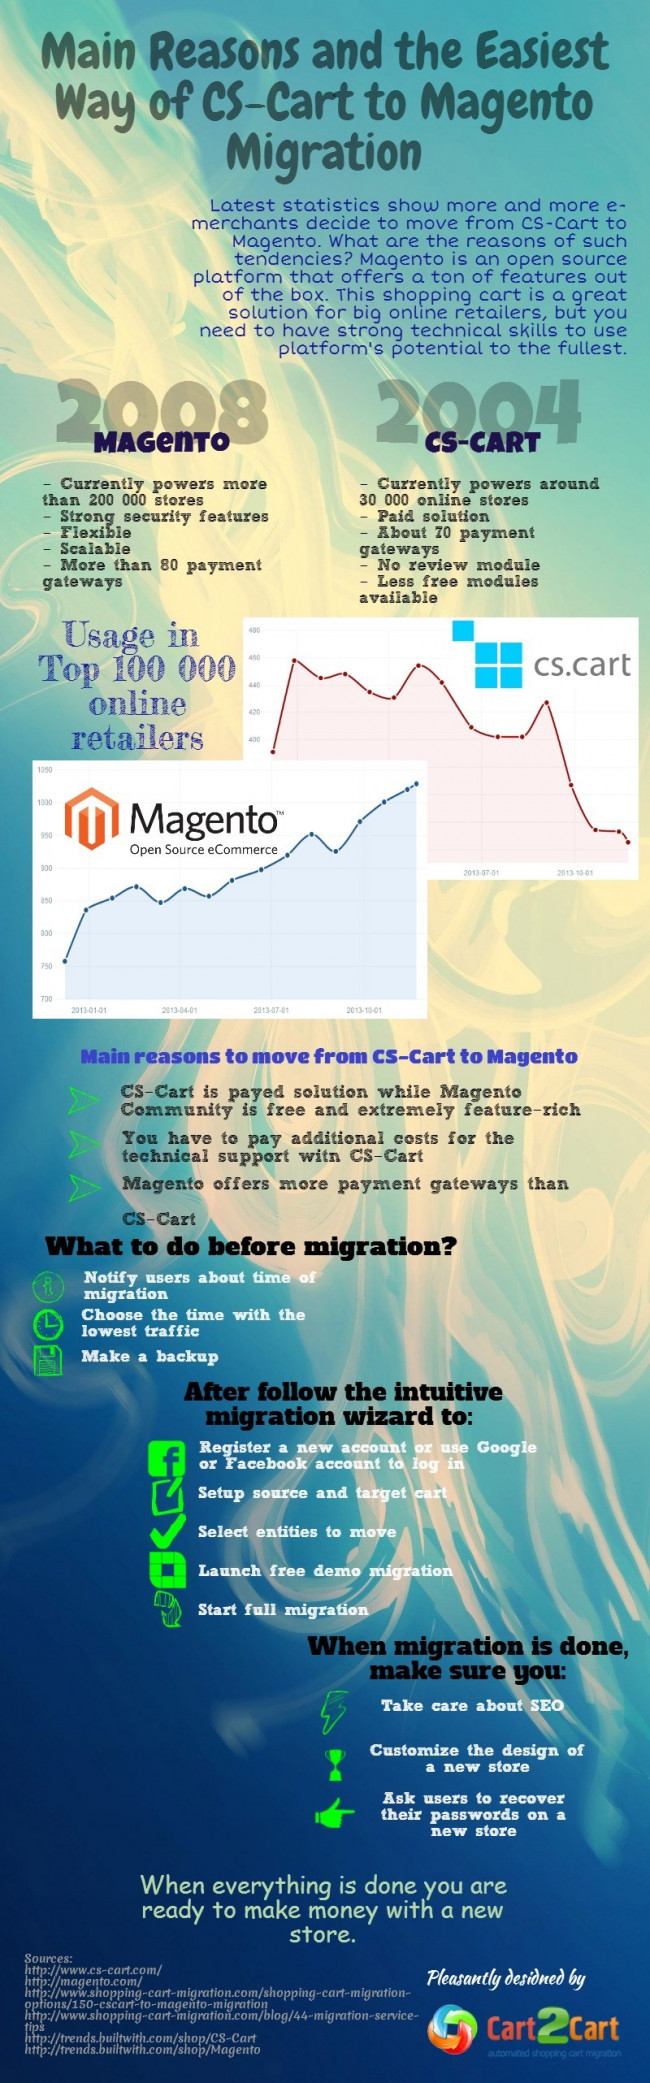 Main Reasons and the Easiest Way of CS-Cart to Magento Migration